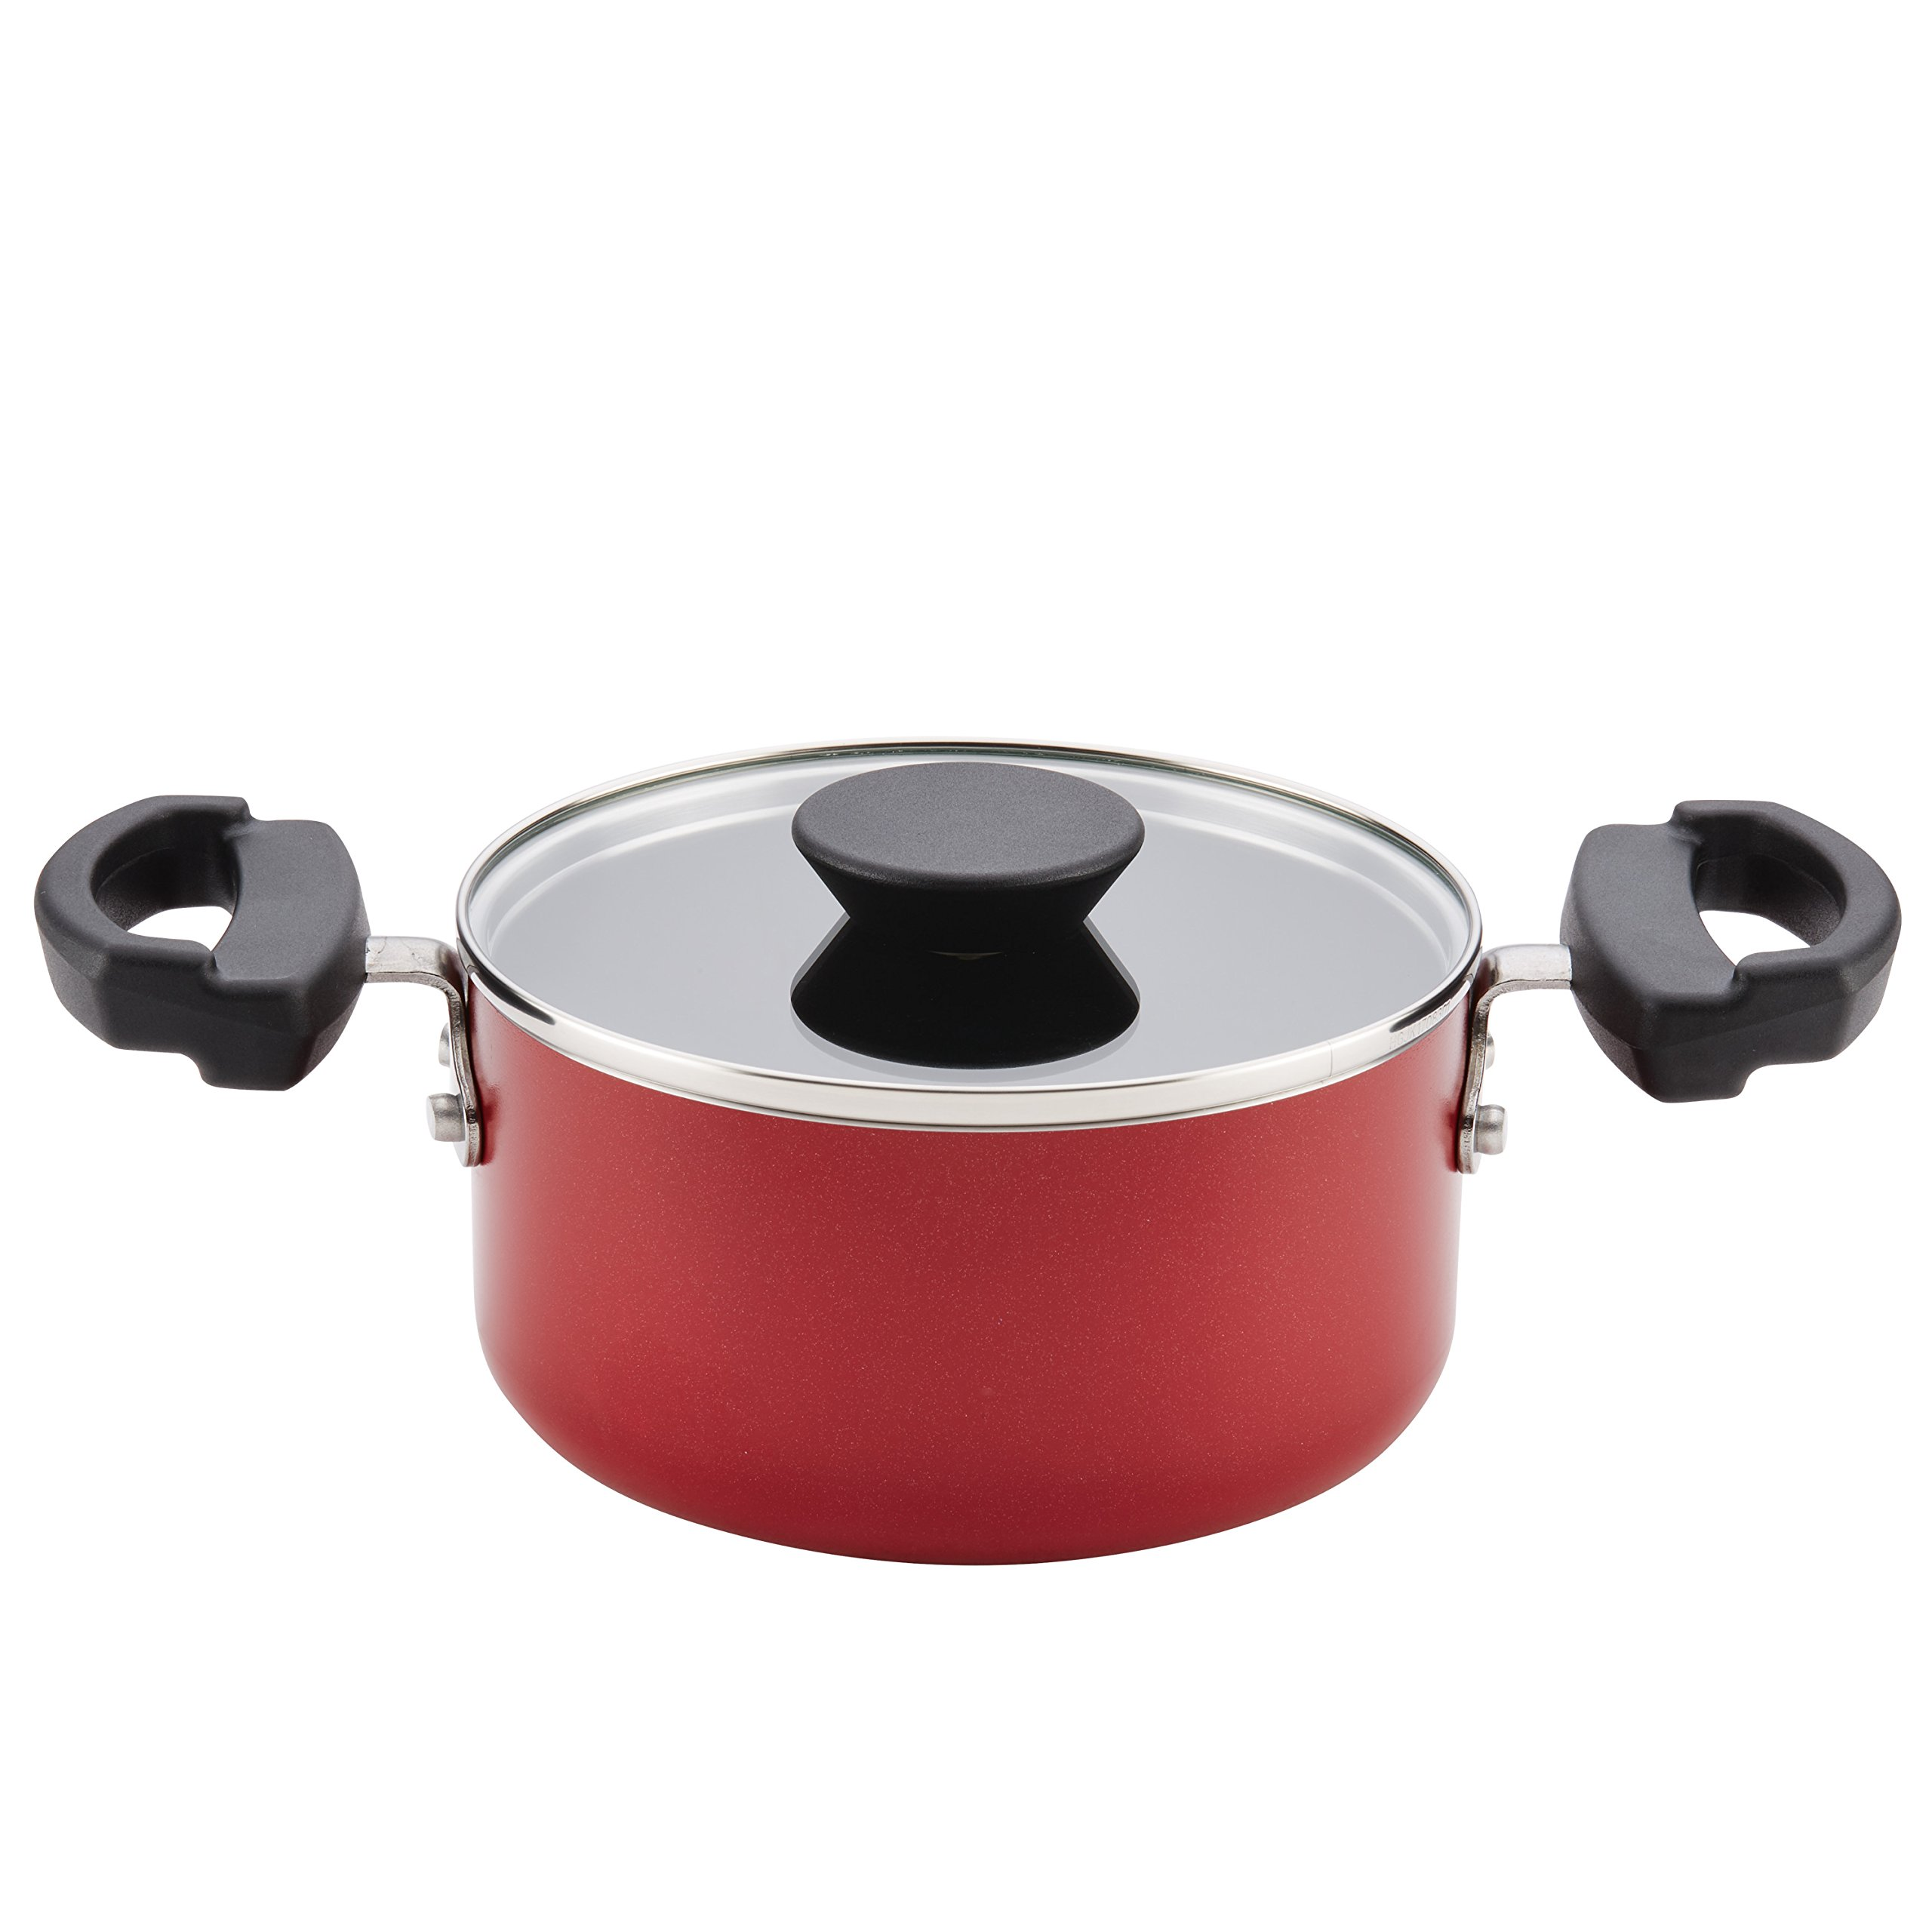 Farberware 20457 Neat Nest Covered Saucepot, One Size, Red